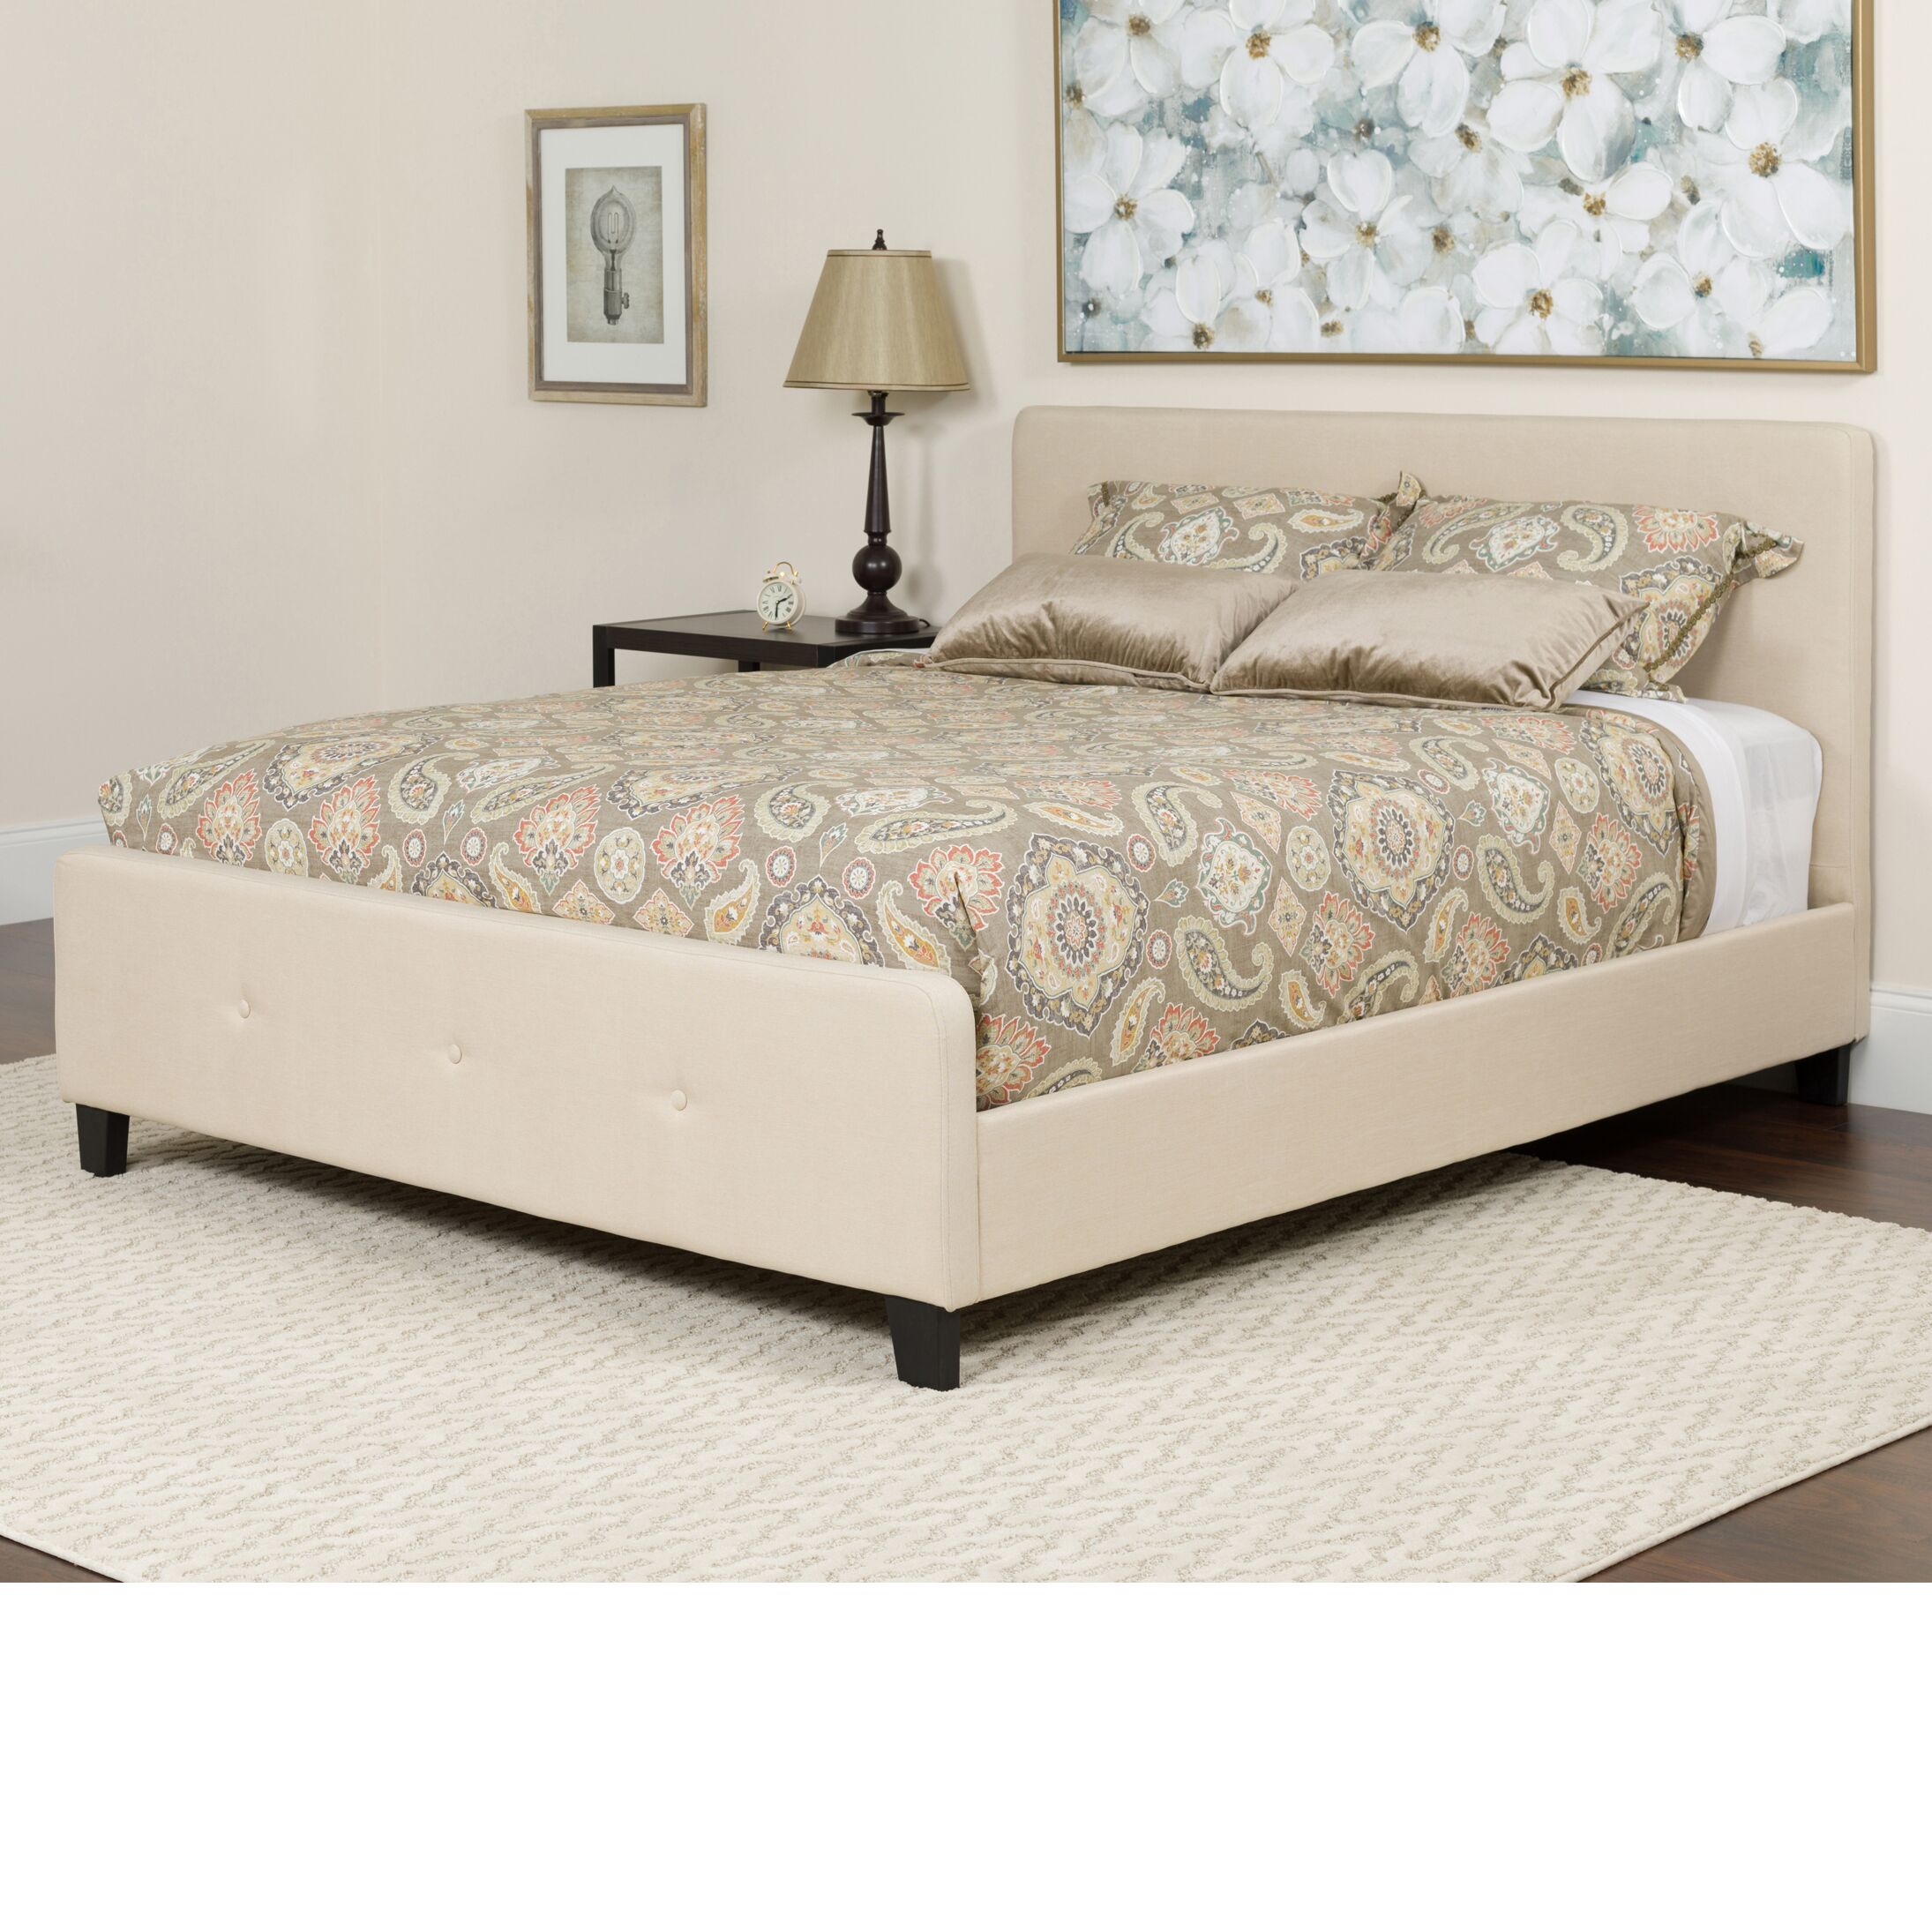 Konen Tufted Upholstered Platform Bed With Mattress Color: Beige, Size: King